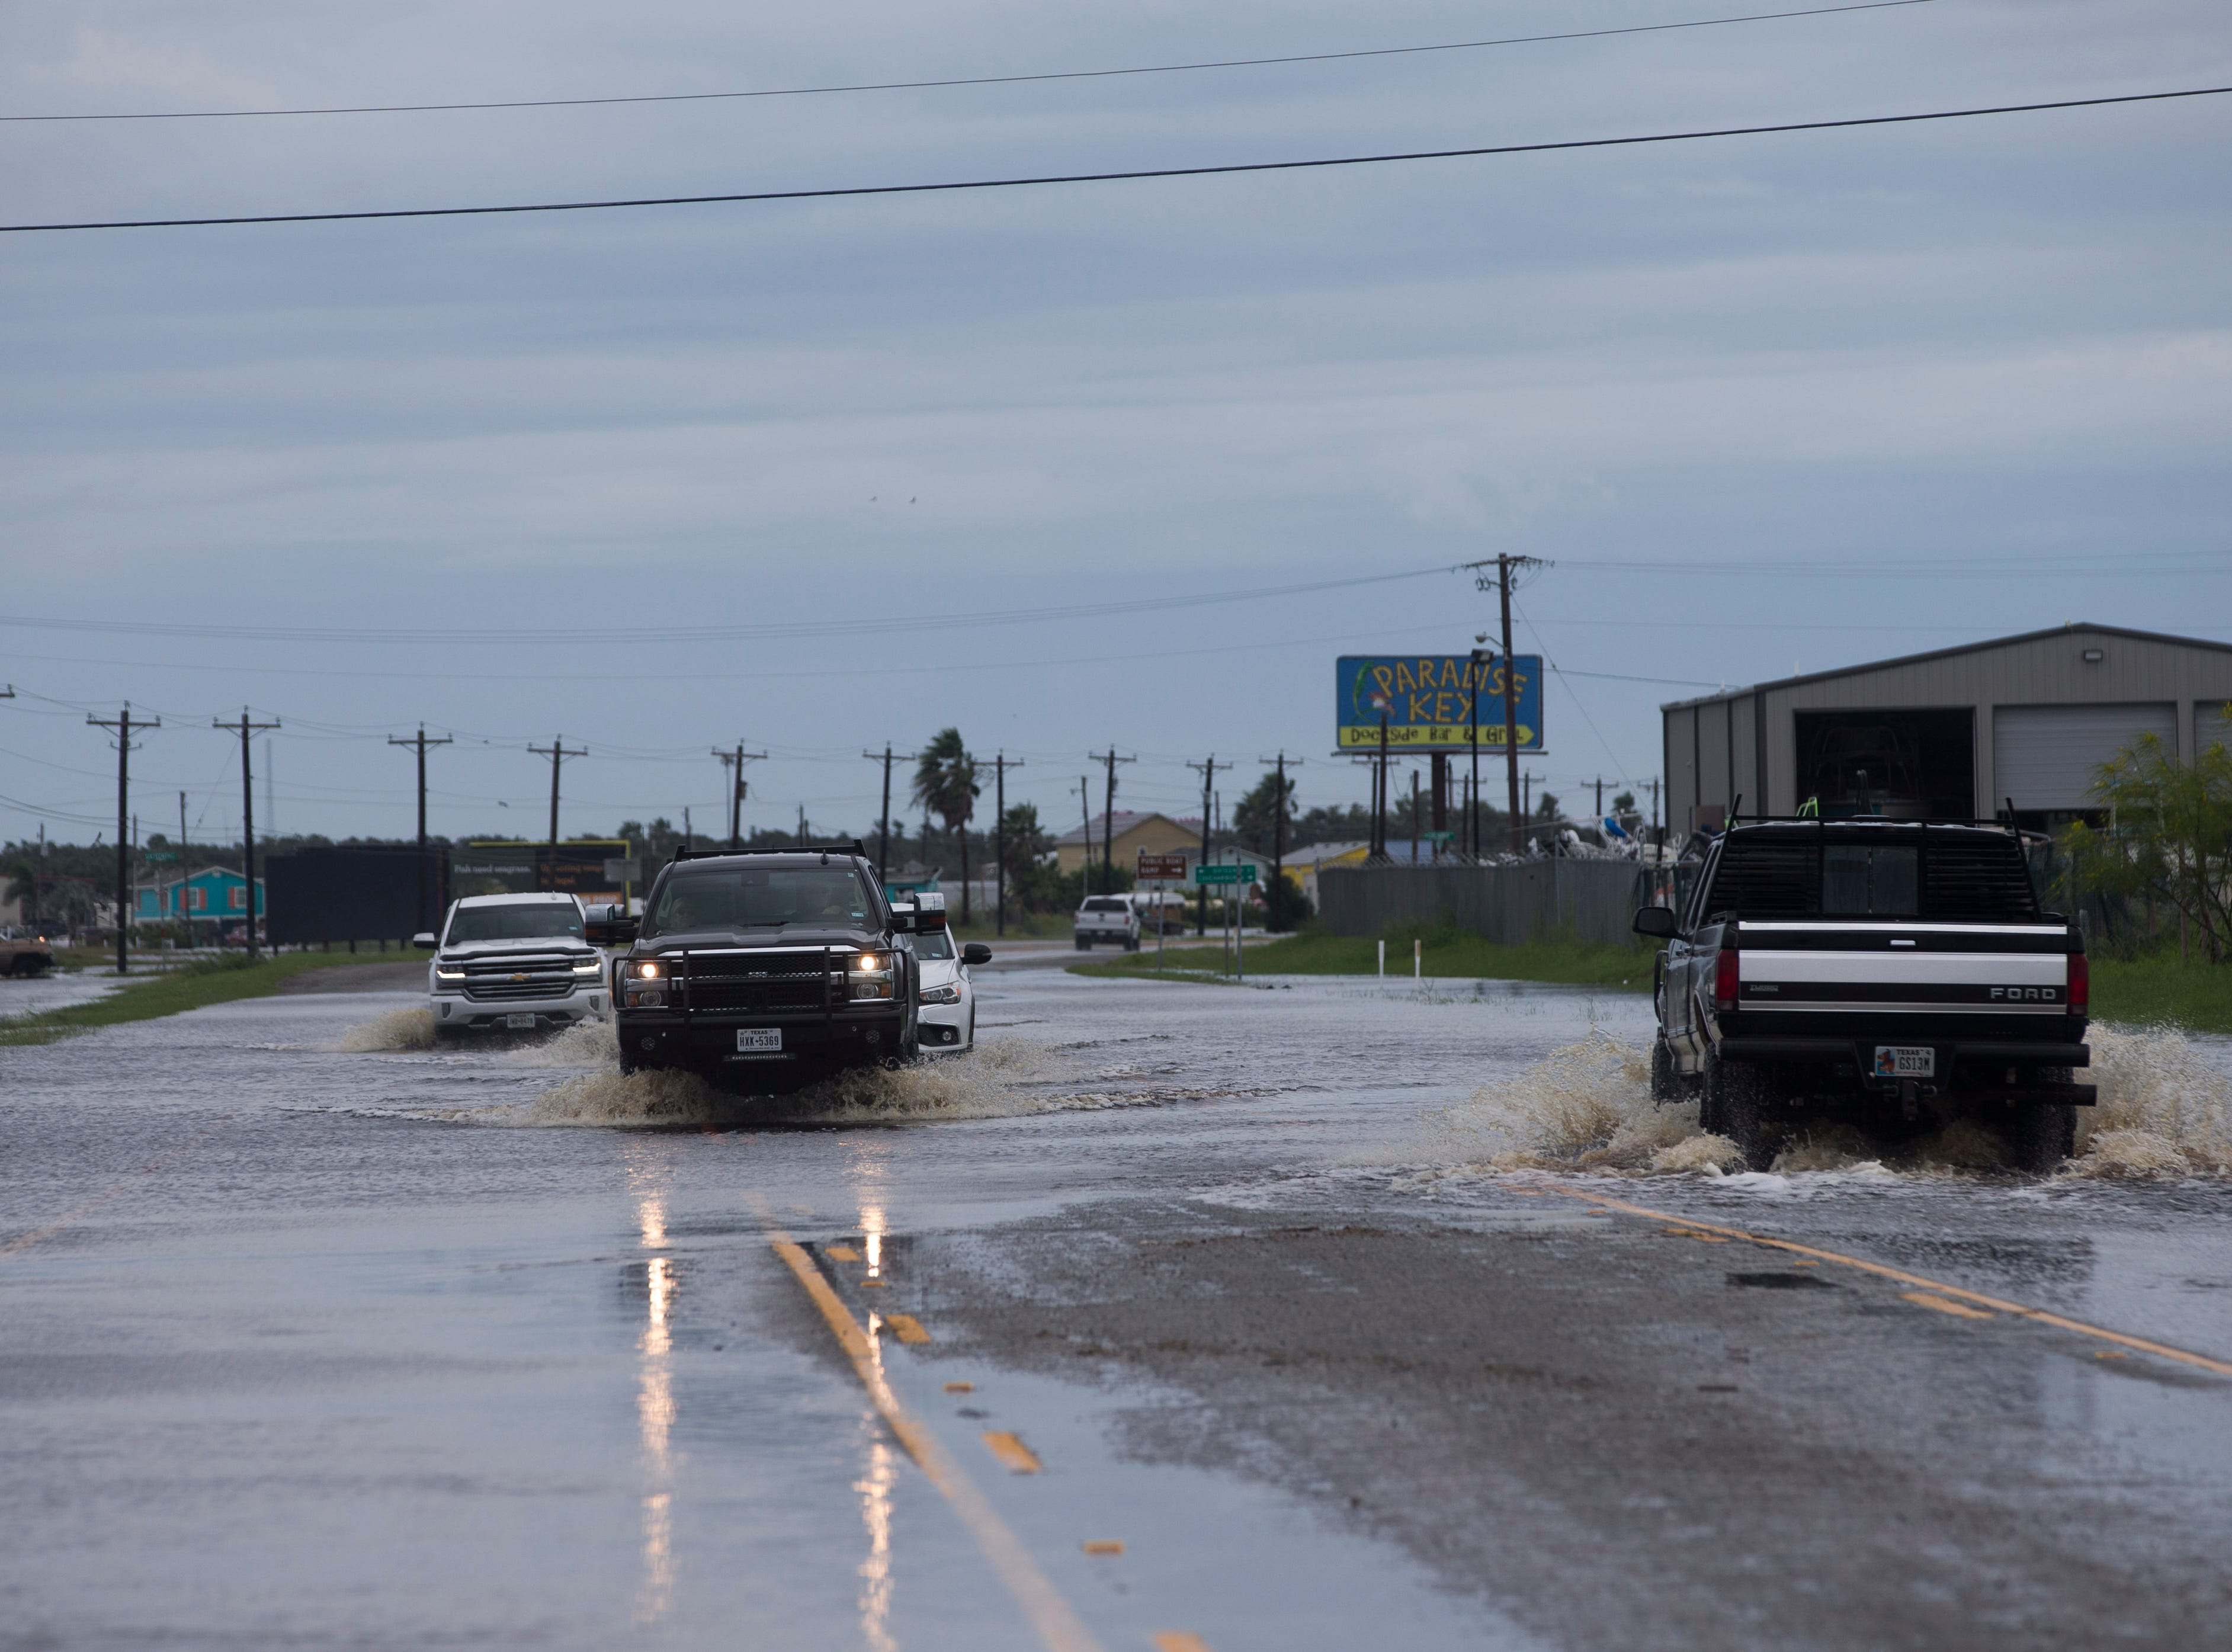 Vehicles drive through high water on Business State Highway 35 between Rockport and Aransas Pass on Saturday, Sept. 15, 2018.